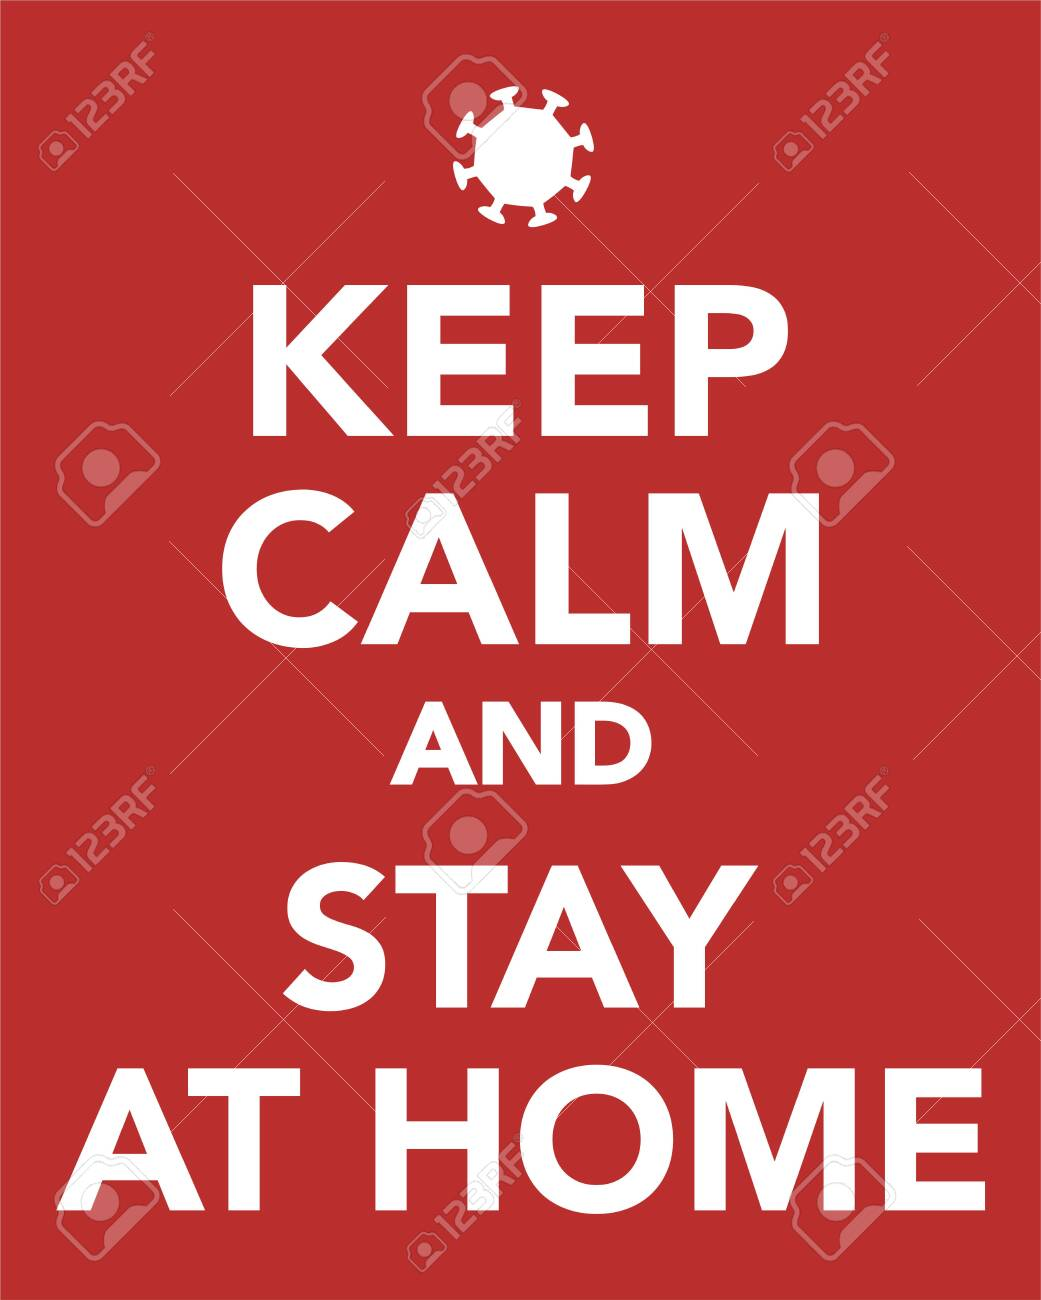 Keep calm and stay at home. Corona virus covid-19. On red background. - 143535685